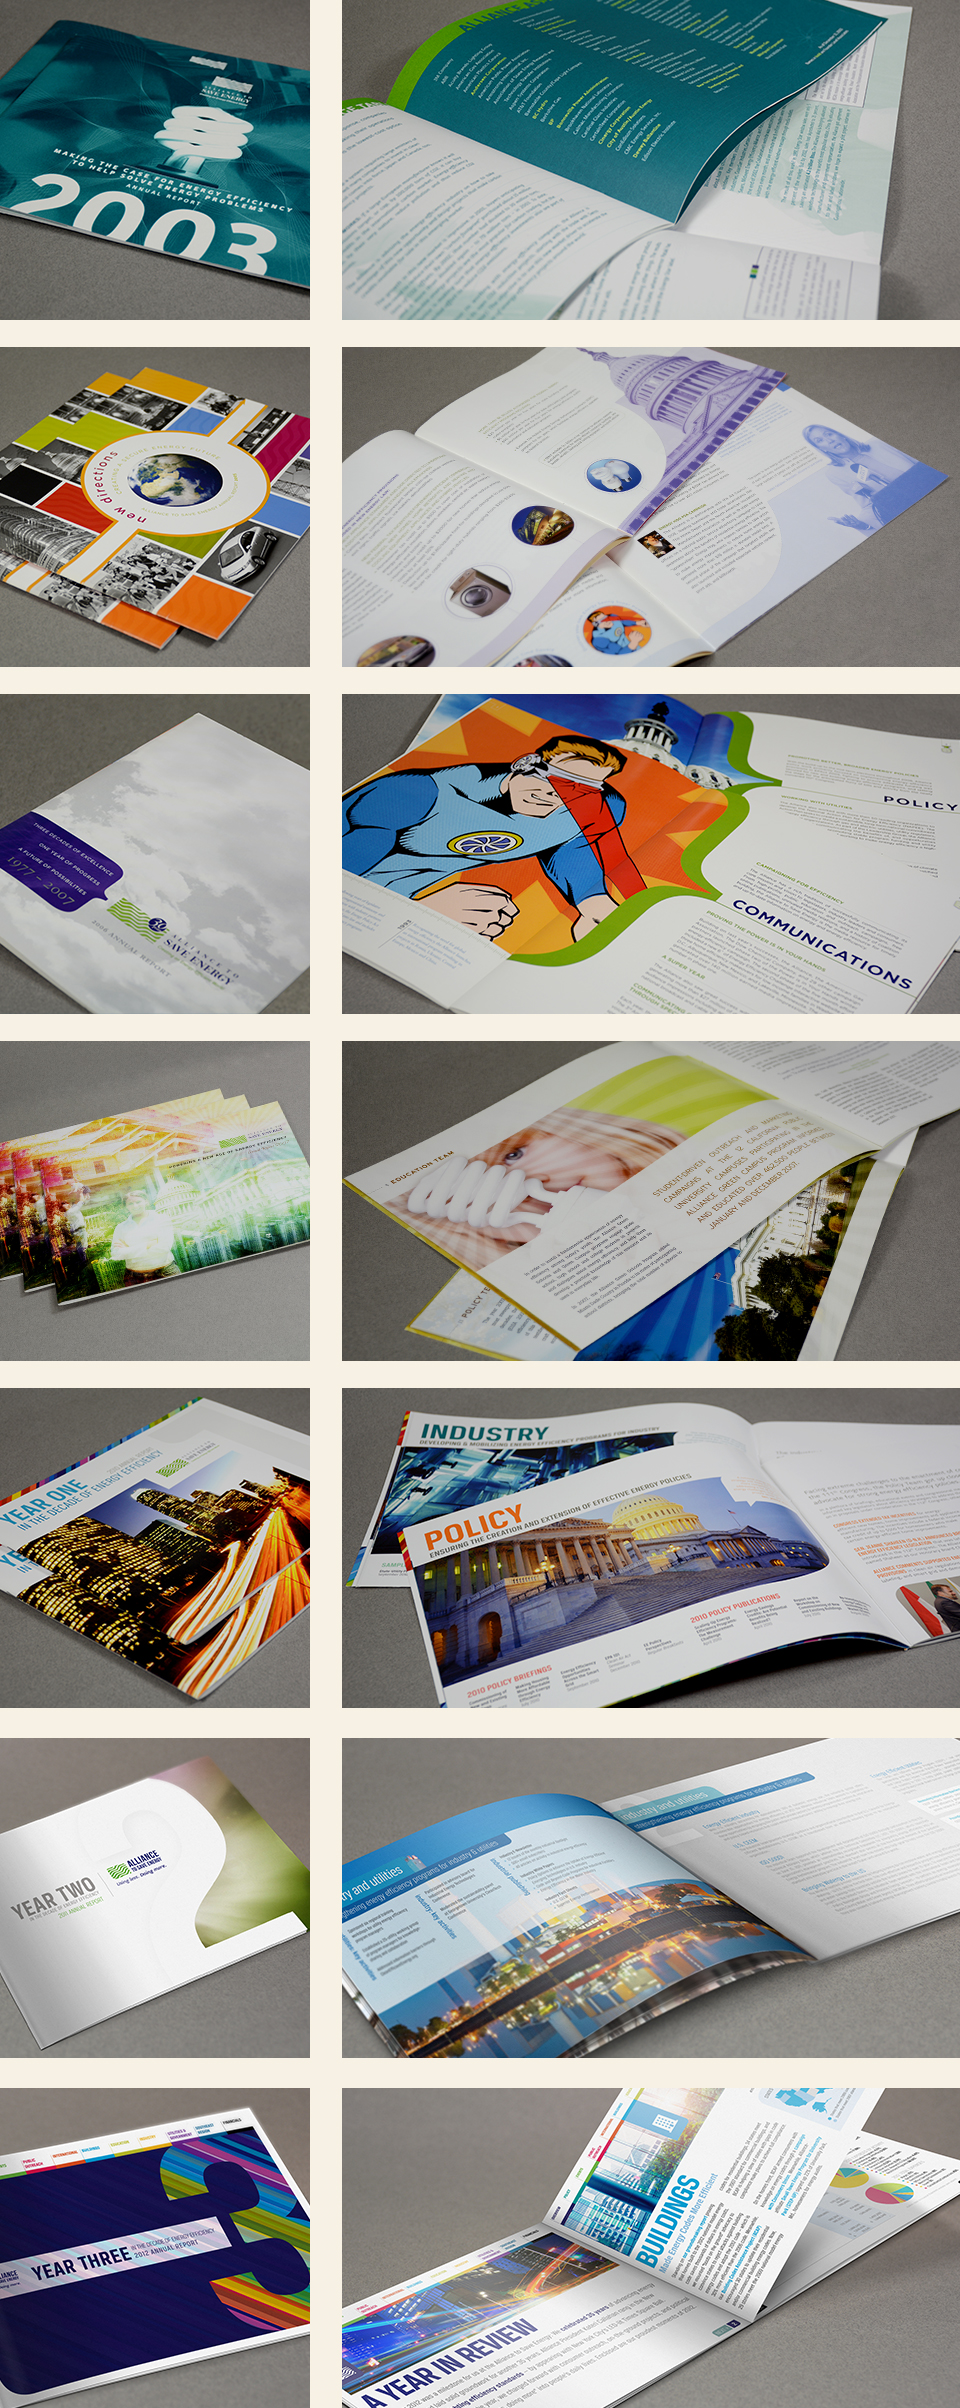 Alliance to Save Energy branding & annual report design by Red Chalk Studios